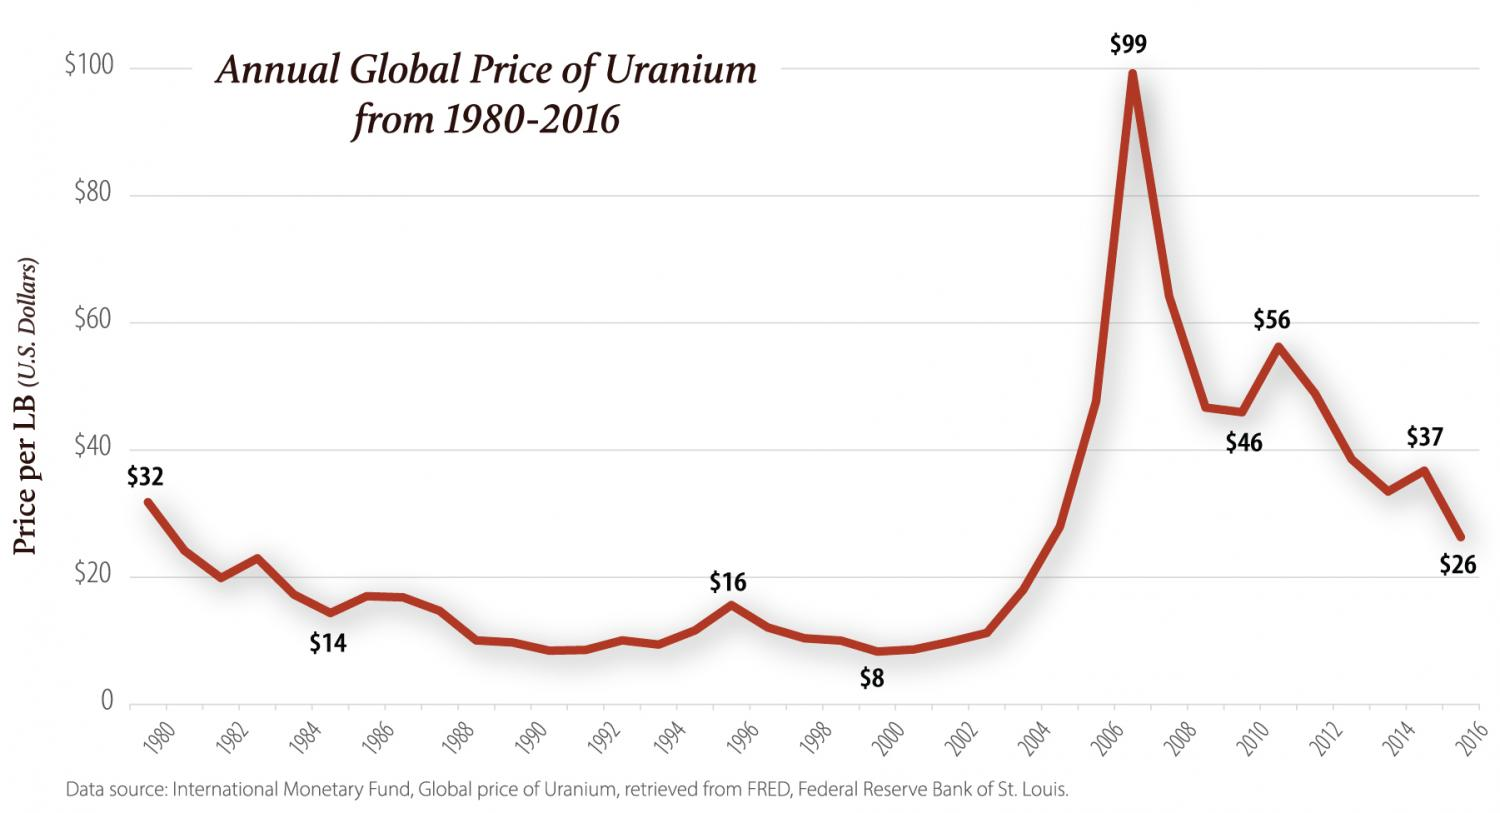 Annual Price of Uranium